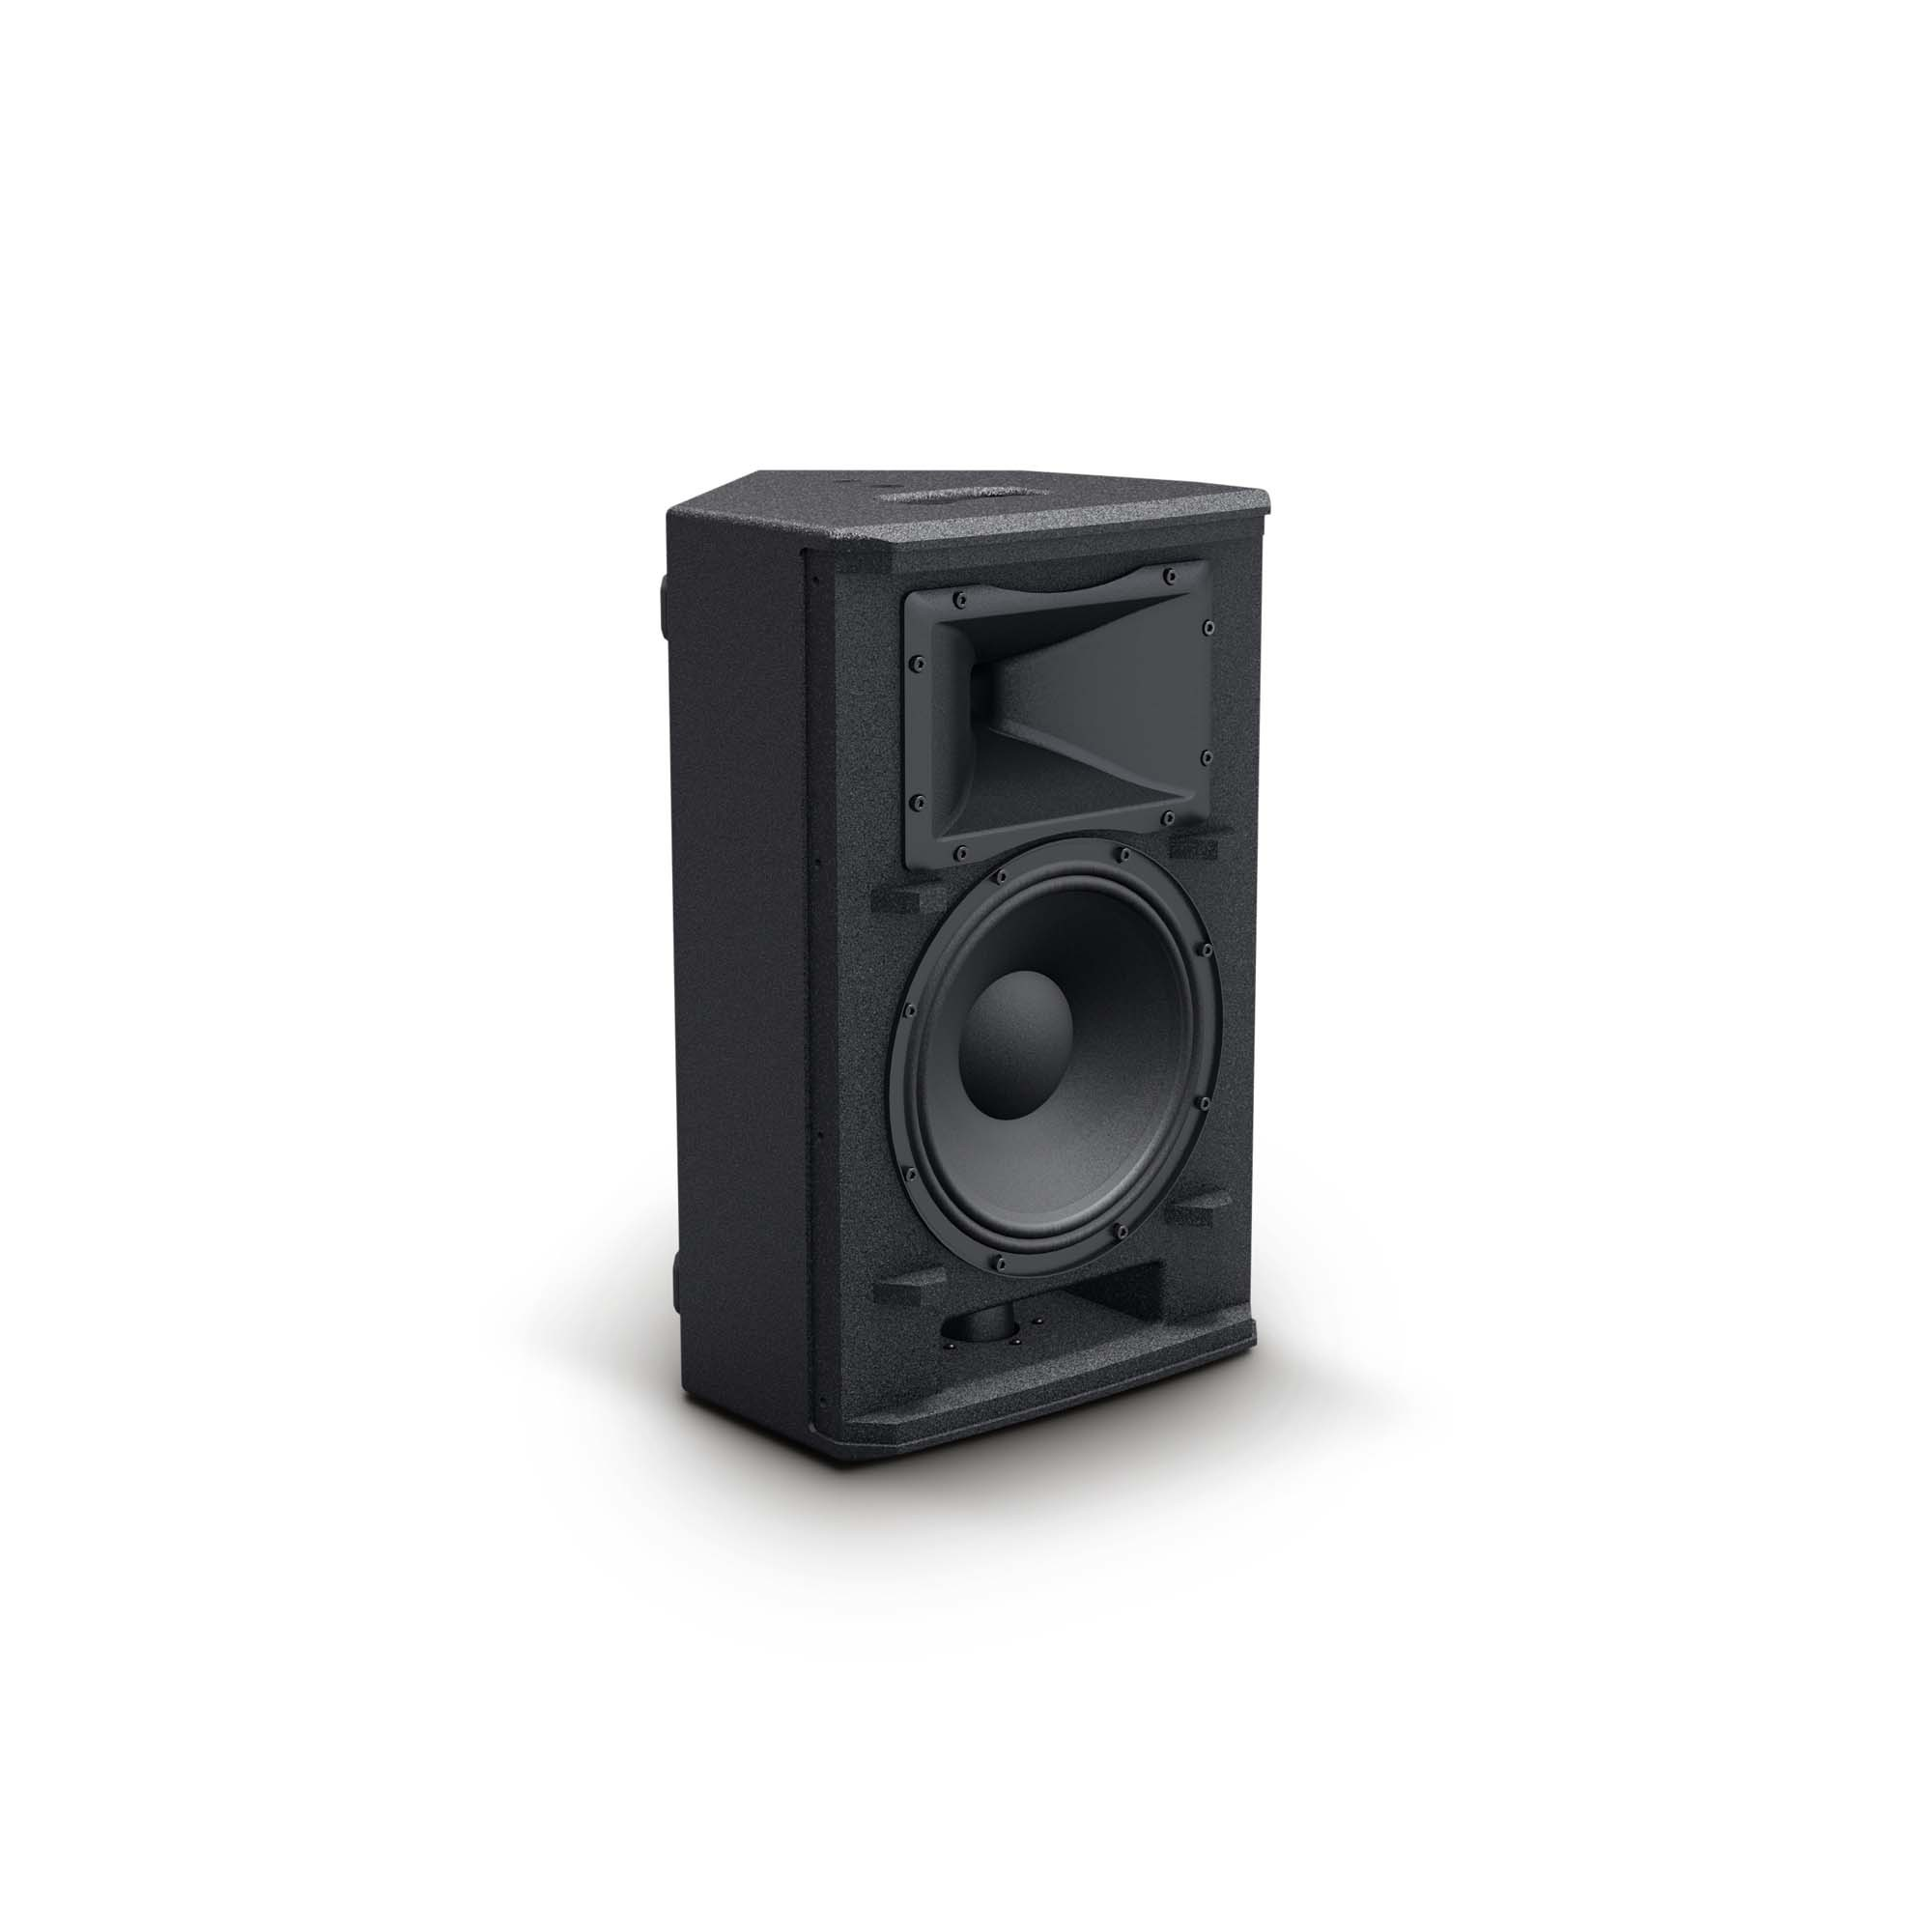 "STINGER 10 G3 2-Way Passive 10"" Bass Reflex PA Speaker"